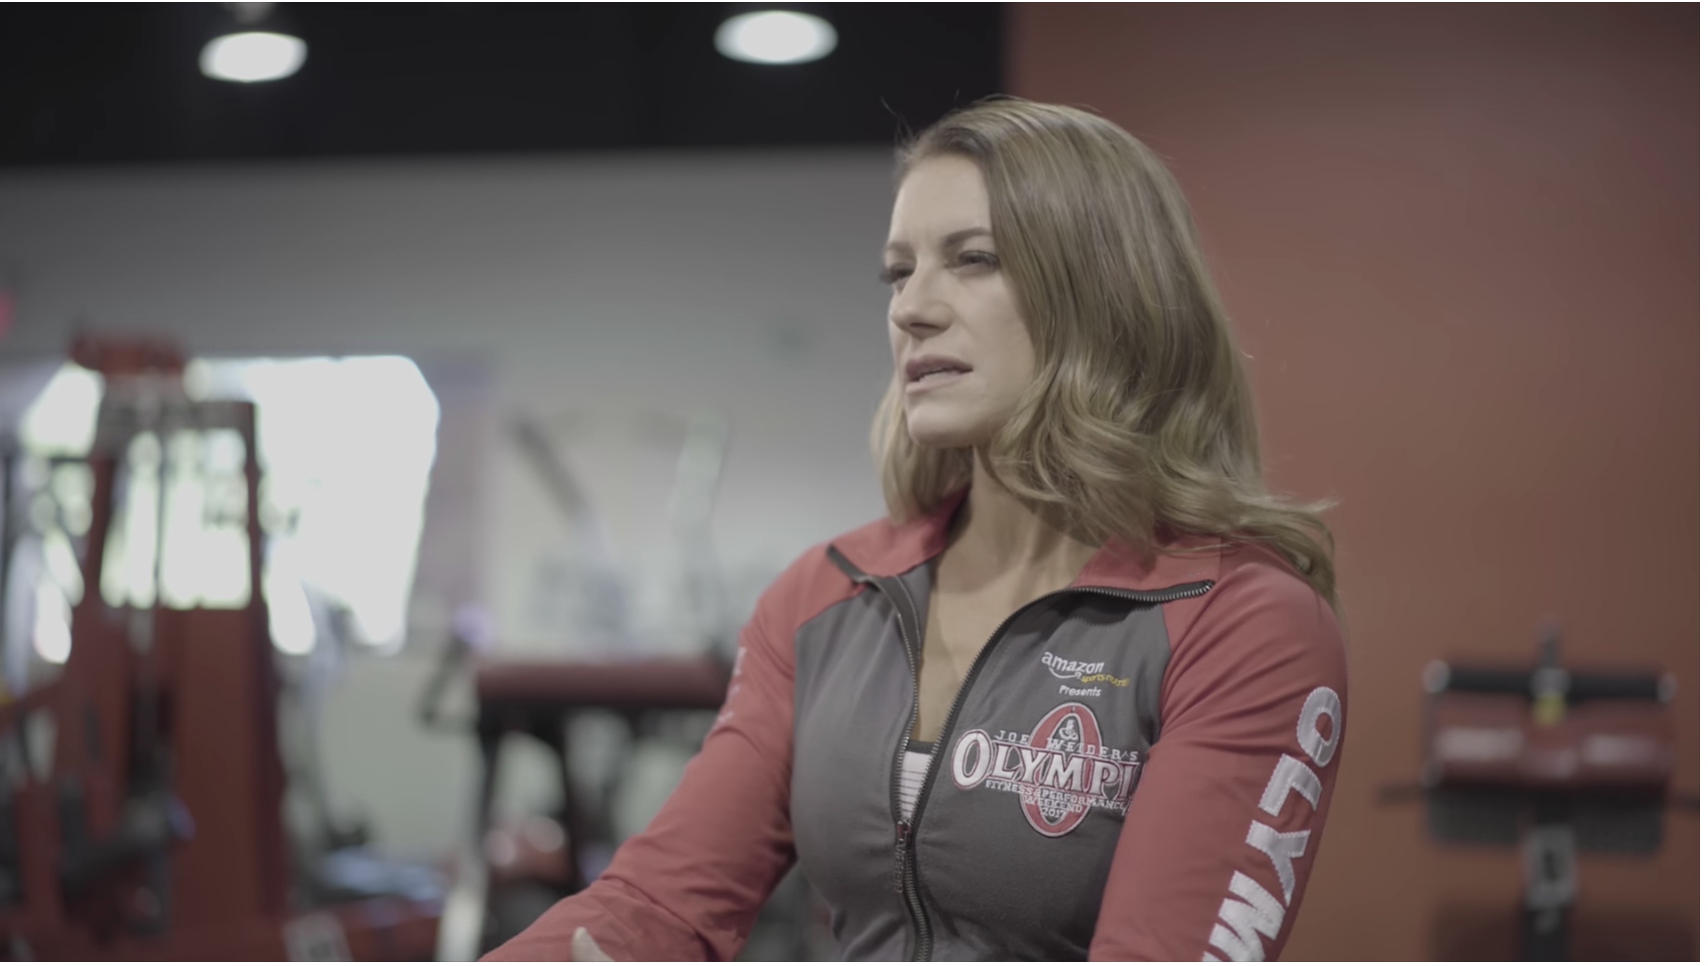 IFBB Fitness Pro Sally Williams Talks About Her Challenges & Dreams For Future Generations. (Video)